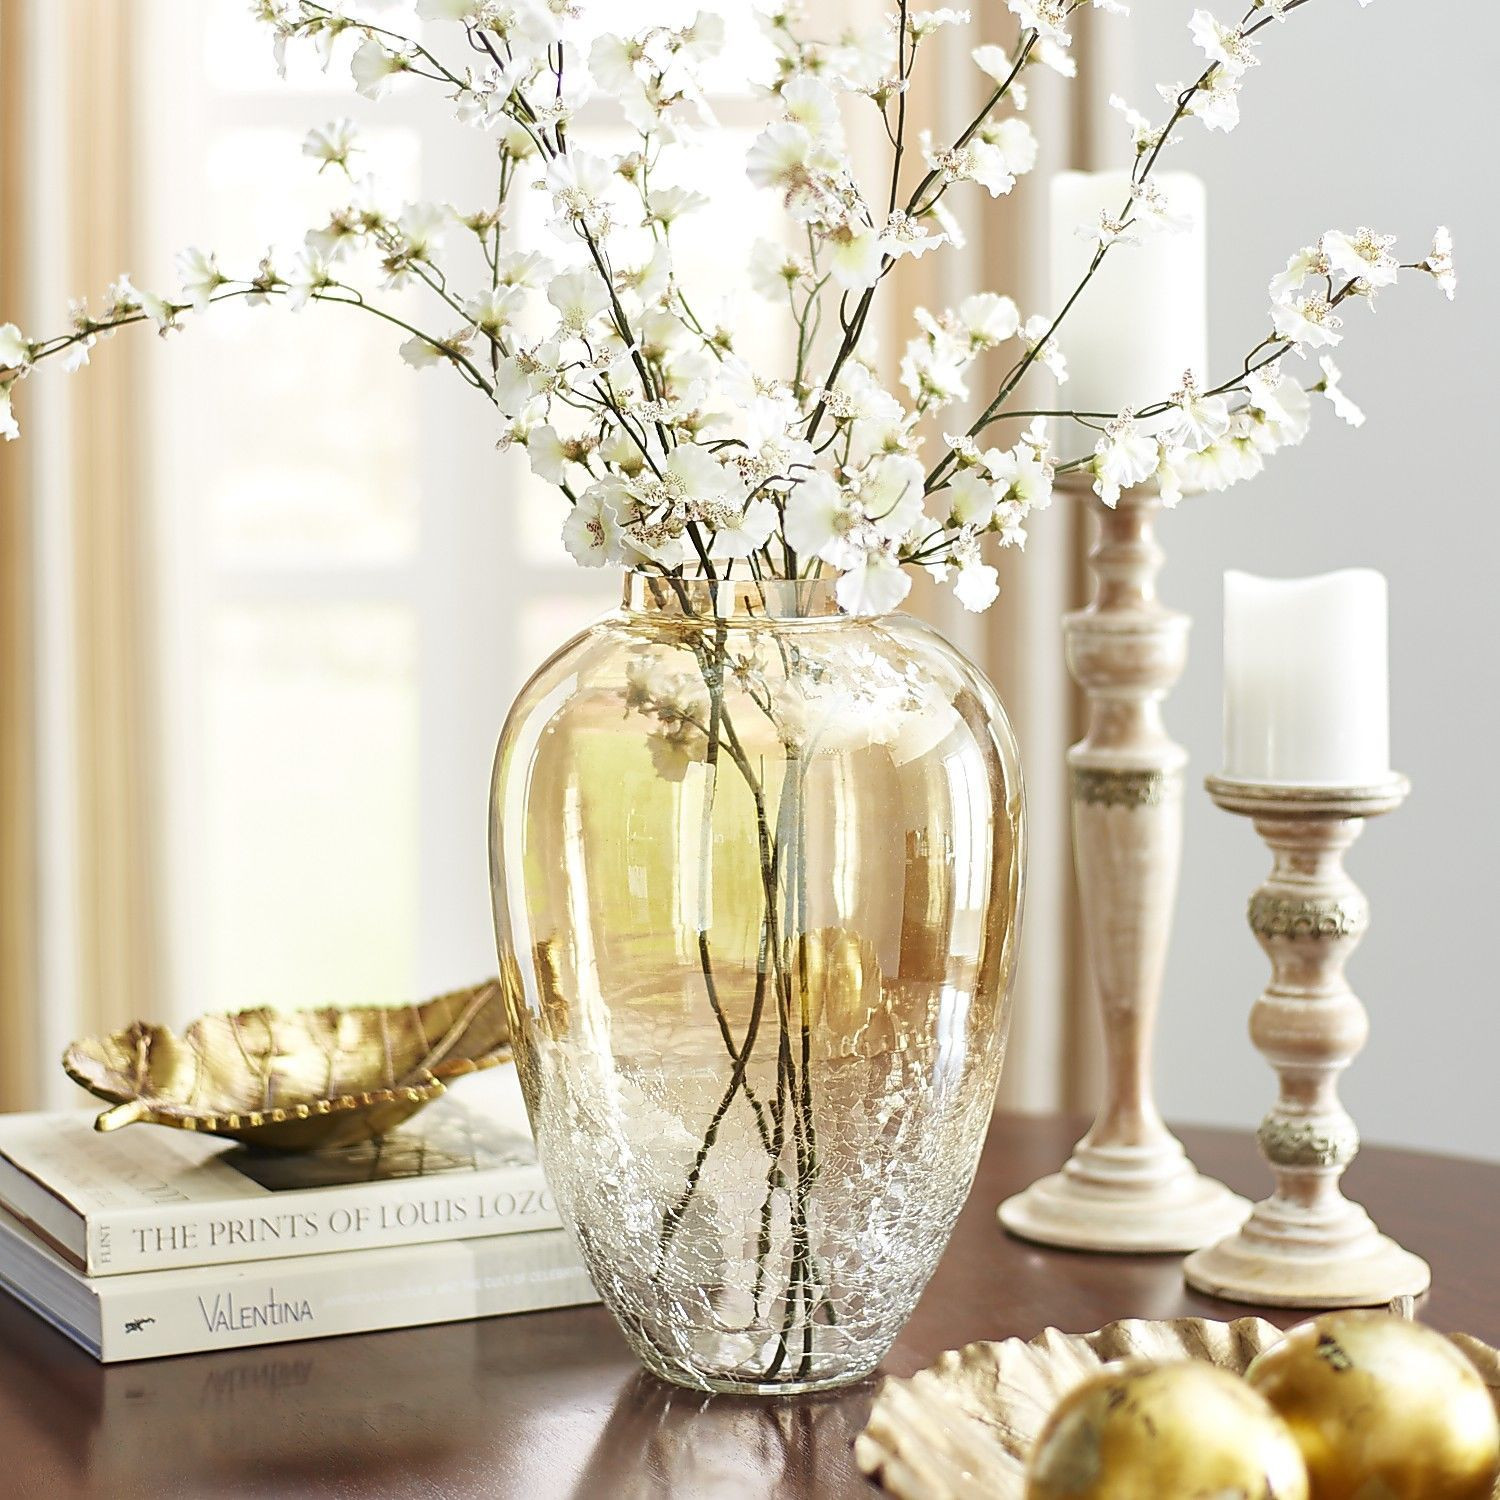 Pier 1 Glass Vase Of Gold Luster Crackle Glass Vases Pier 1 Imports Family Rooms In Gold Luster Crackle Glass Vases Pier 1 Imports